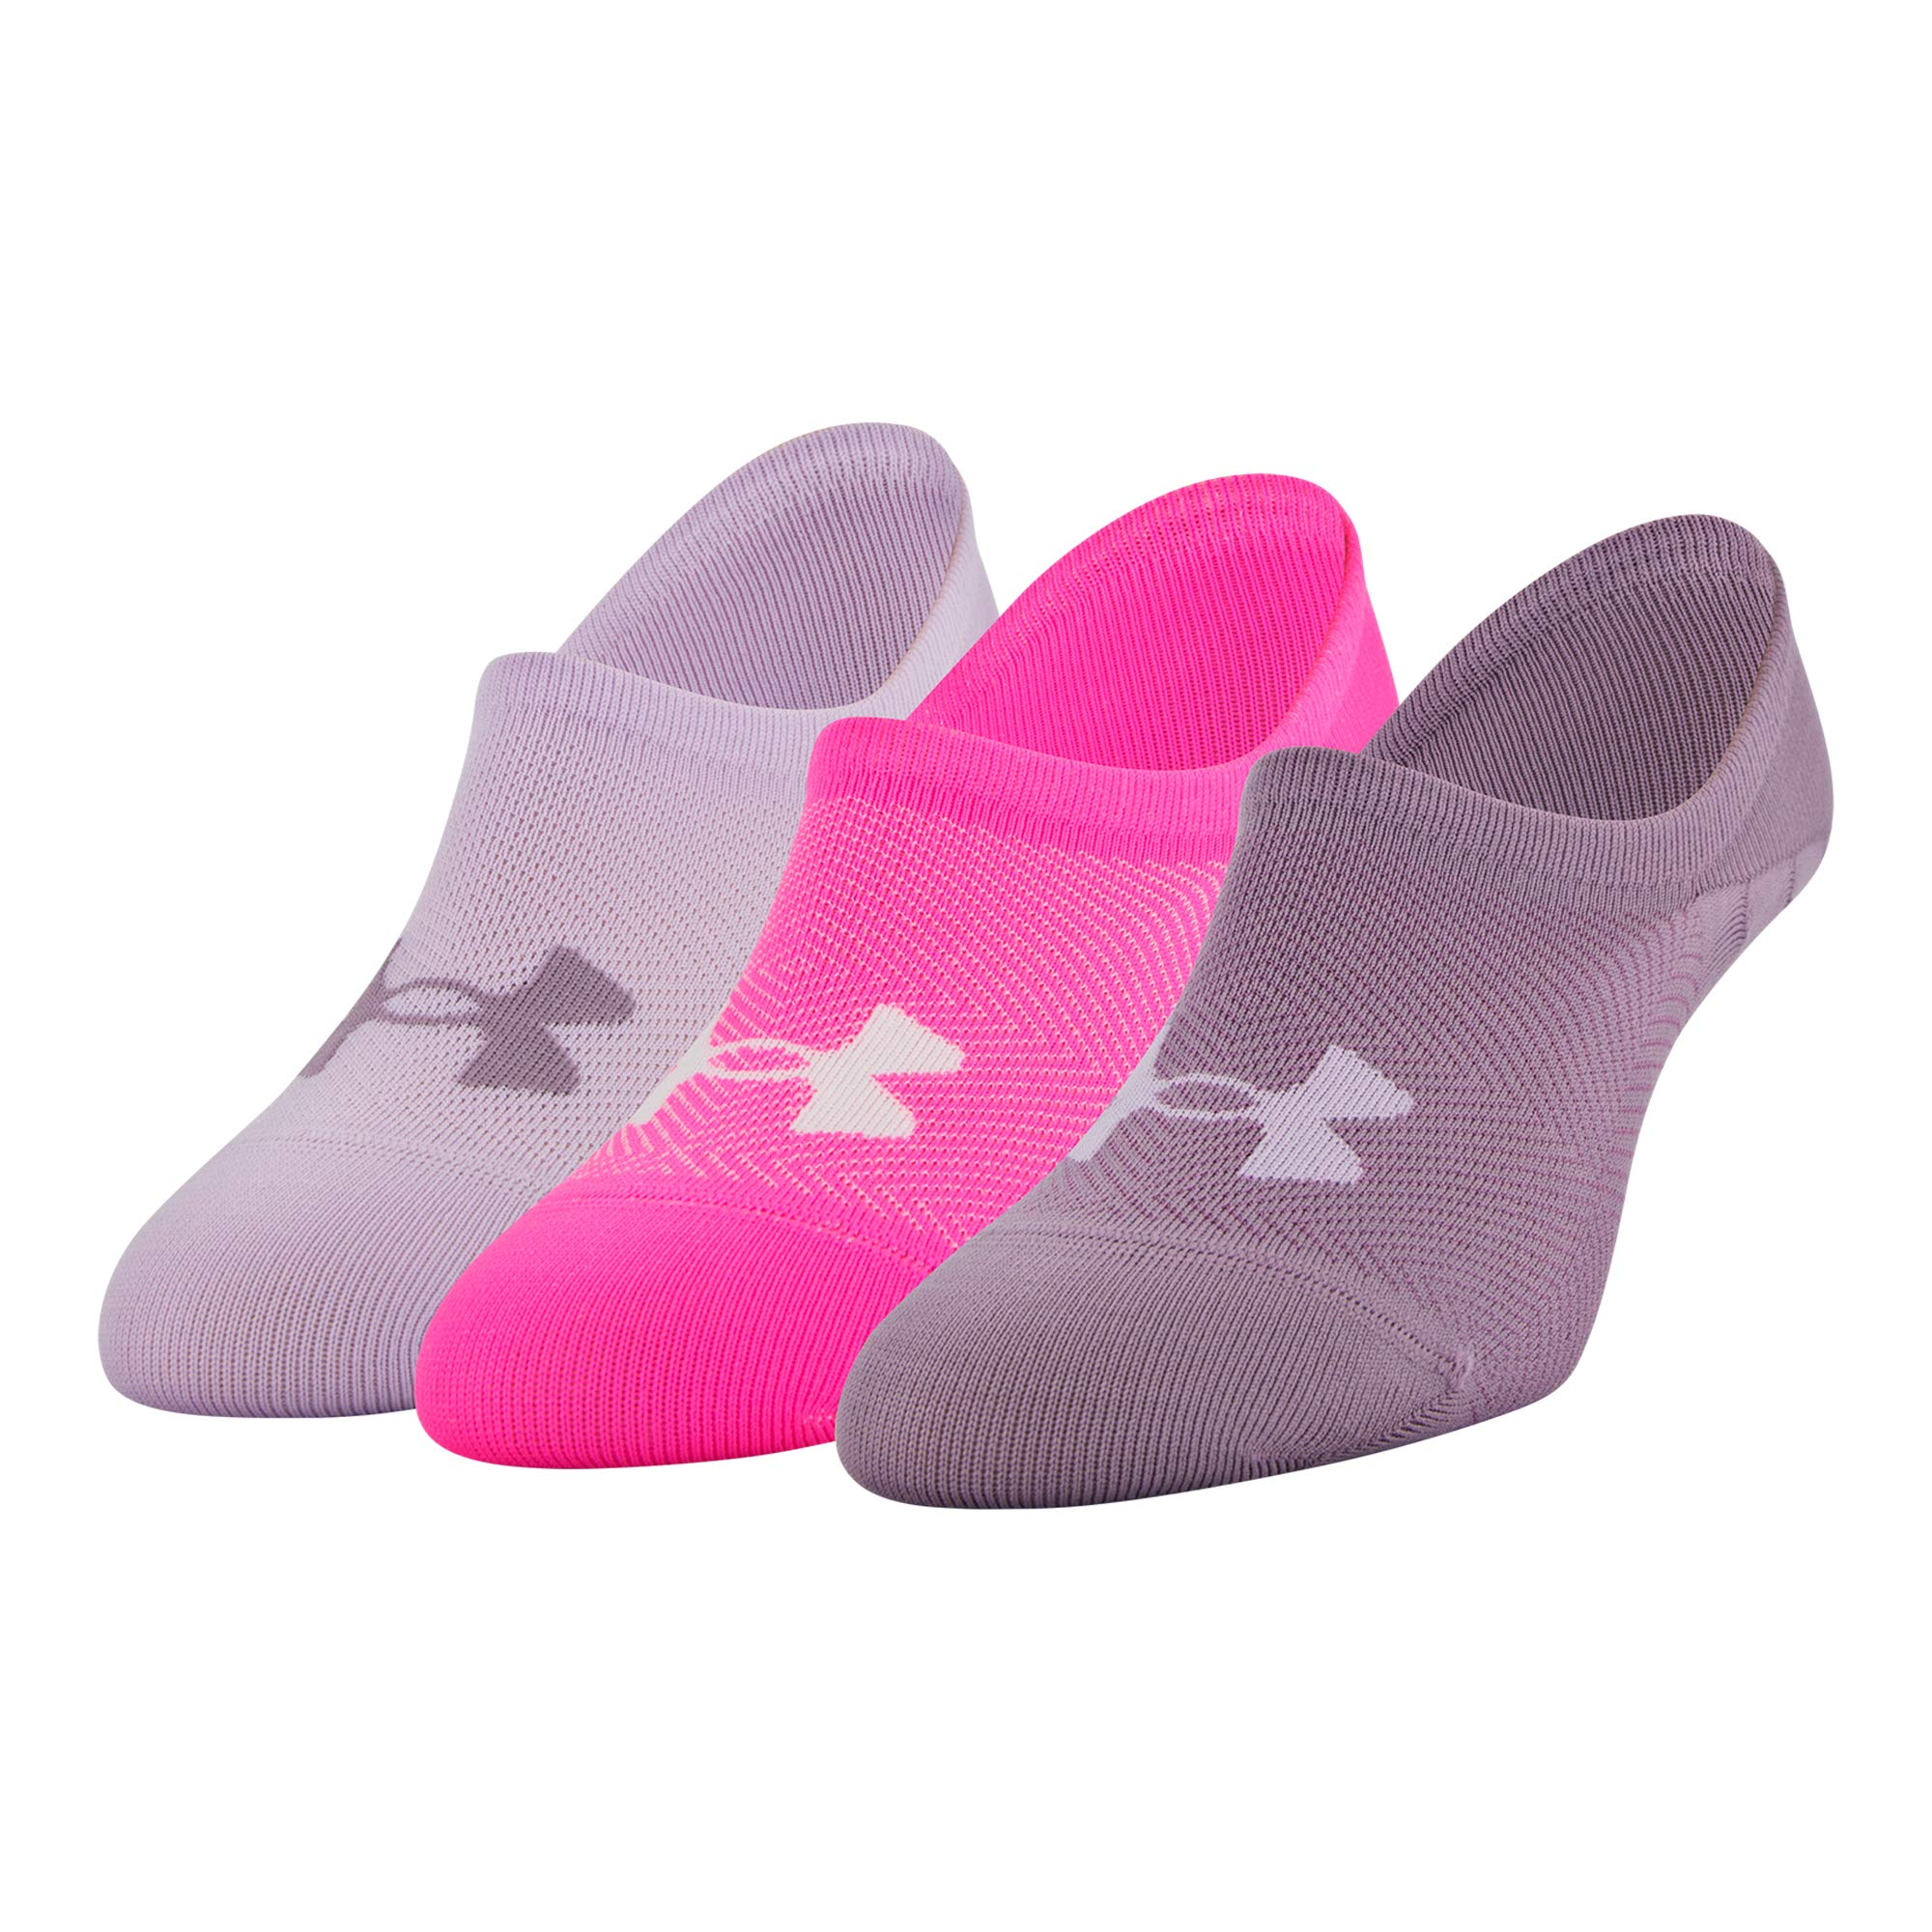 Under Armour Women's Essential Ultra Low Socks, 3-Pair, Purple Pink Assorted, Shoe Size: 6-9 by Under Armour